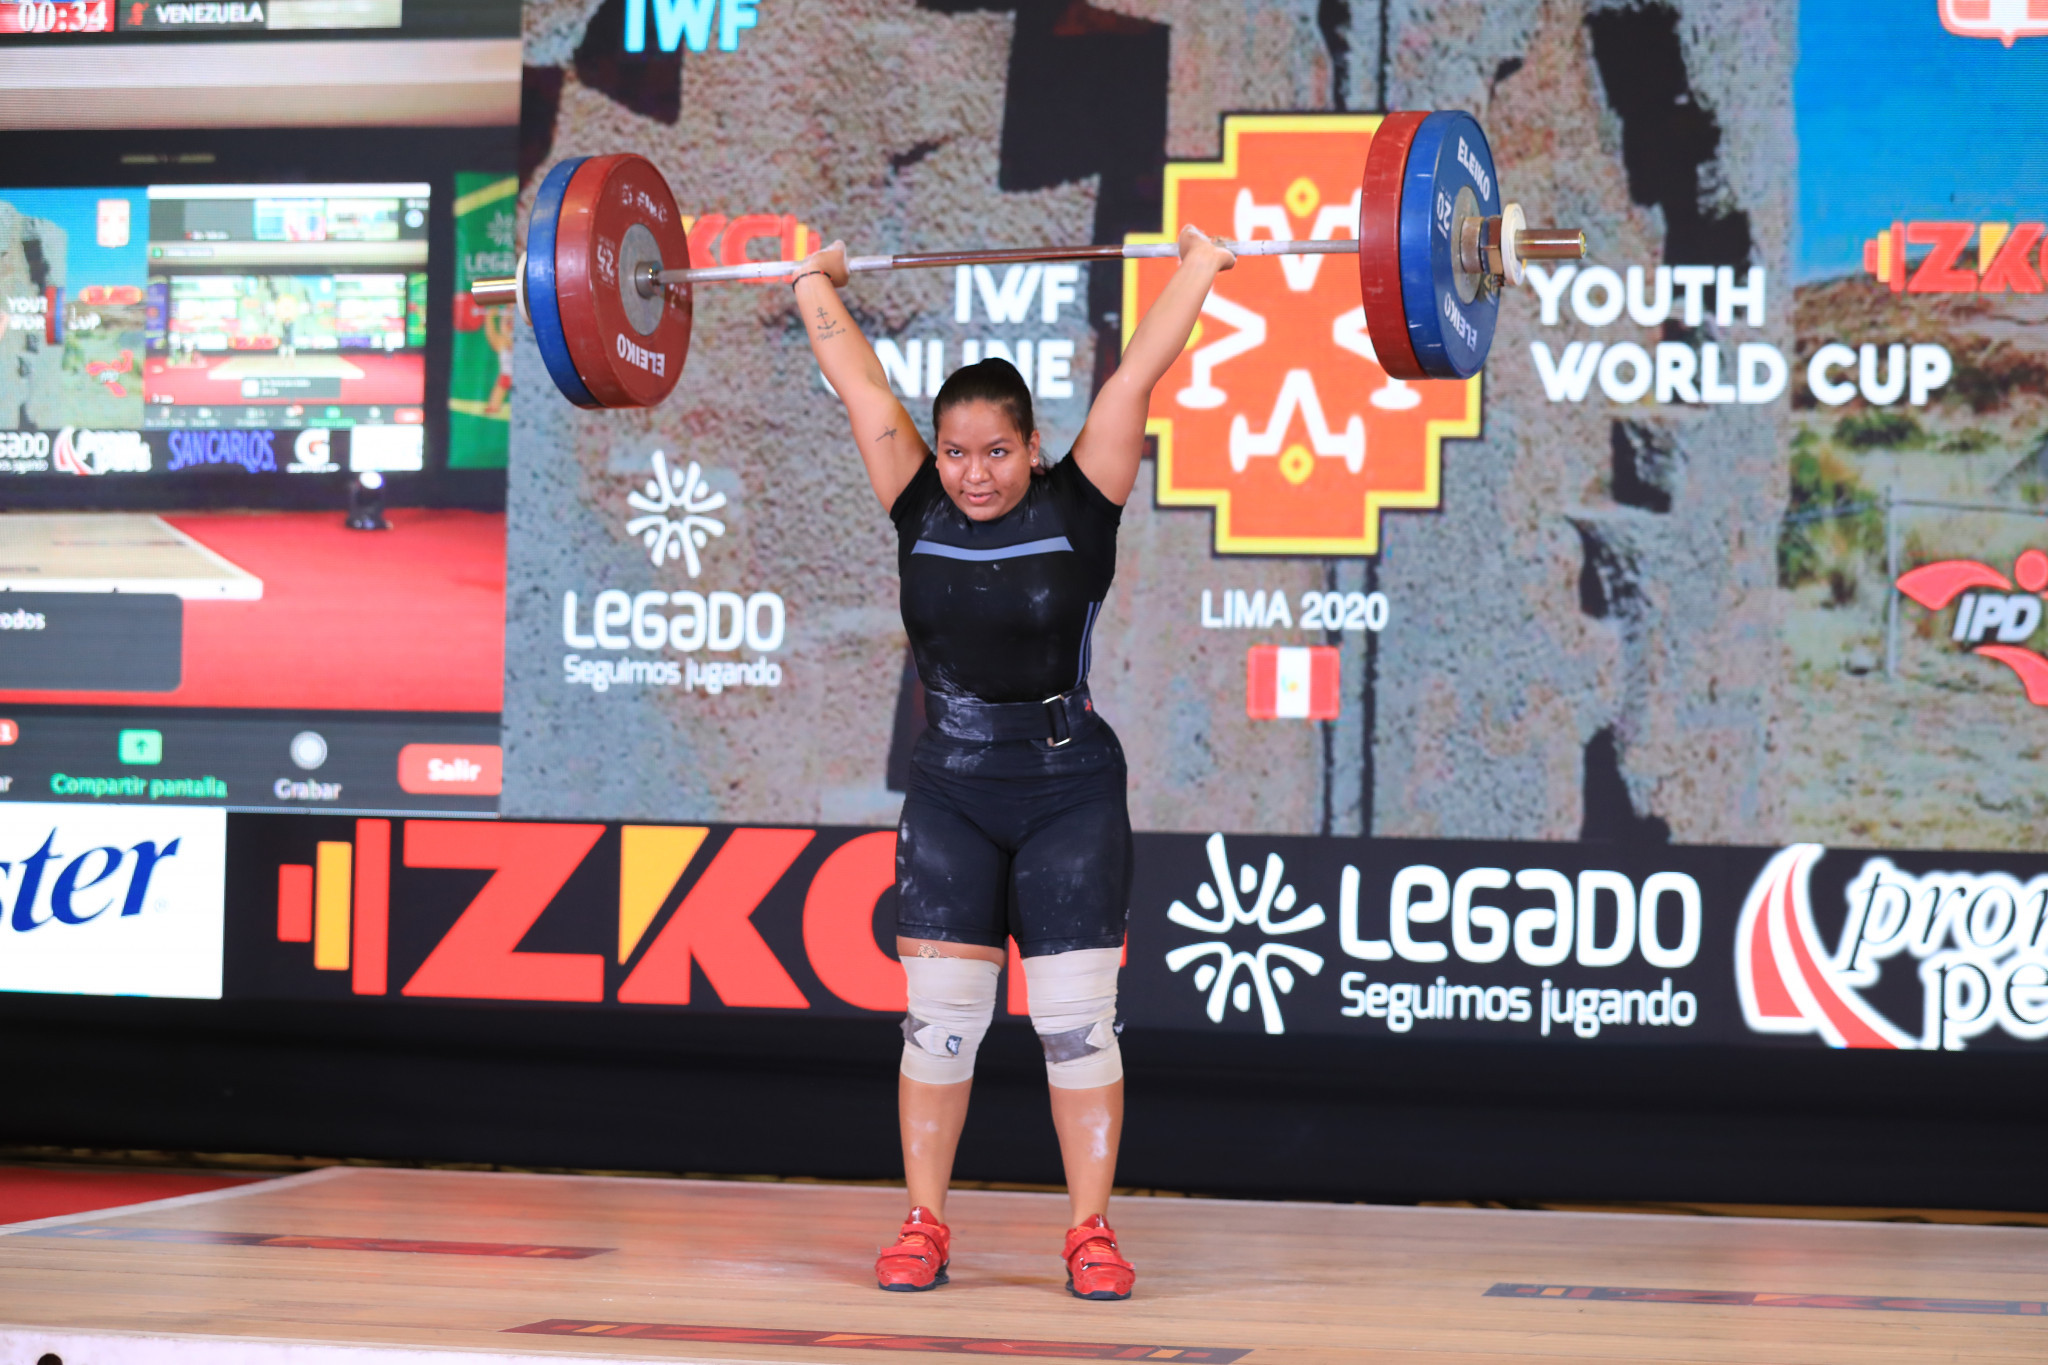 Saldarriaga won all three titles in the women's 81kg class - helping Peru top the medals table ©Peru Weightlifting